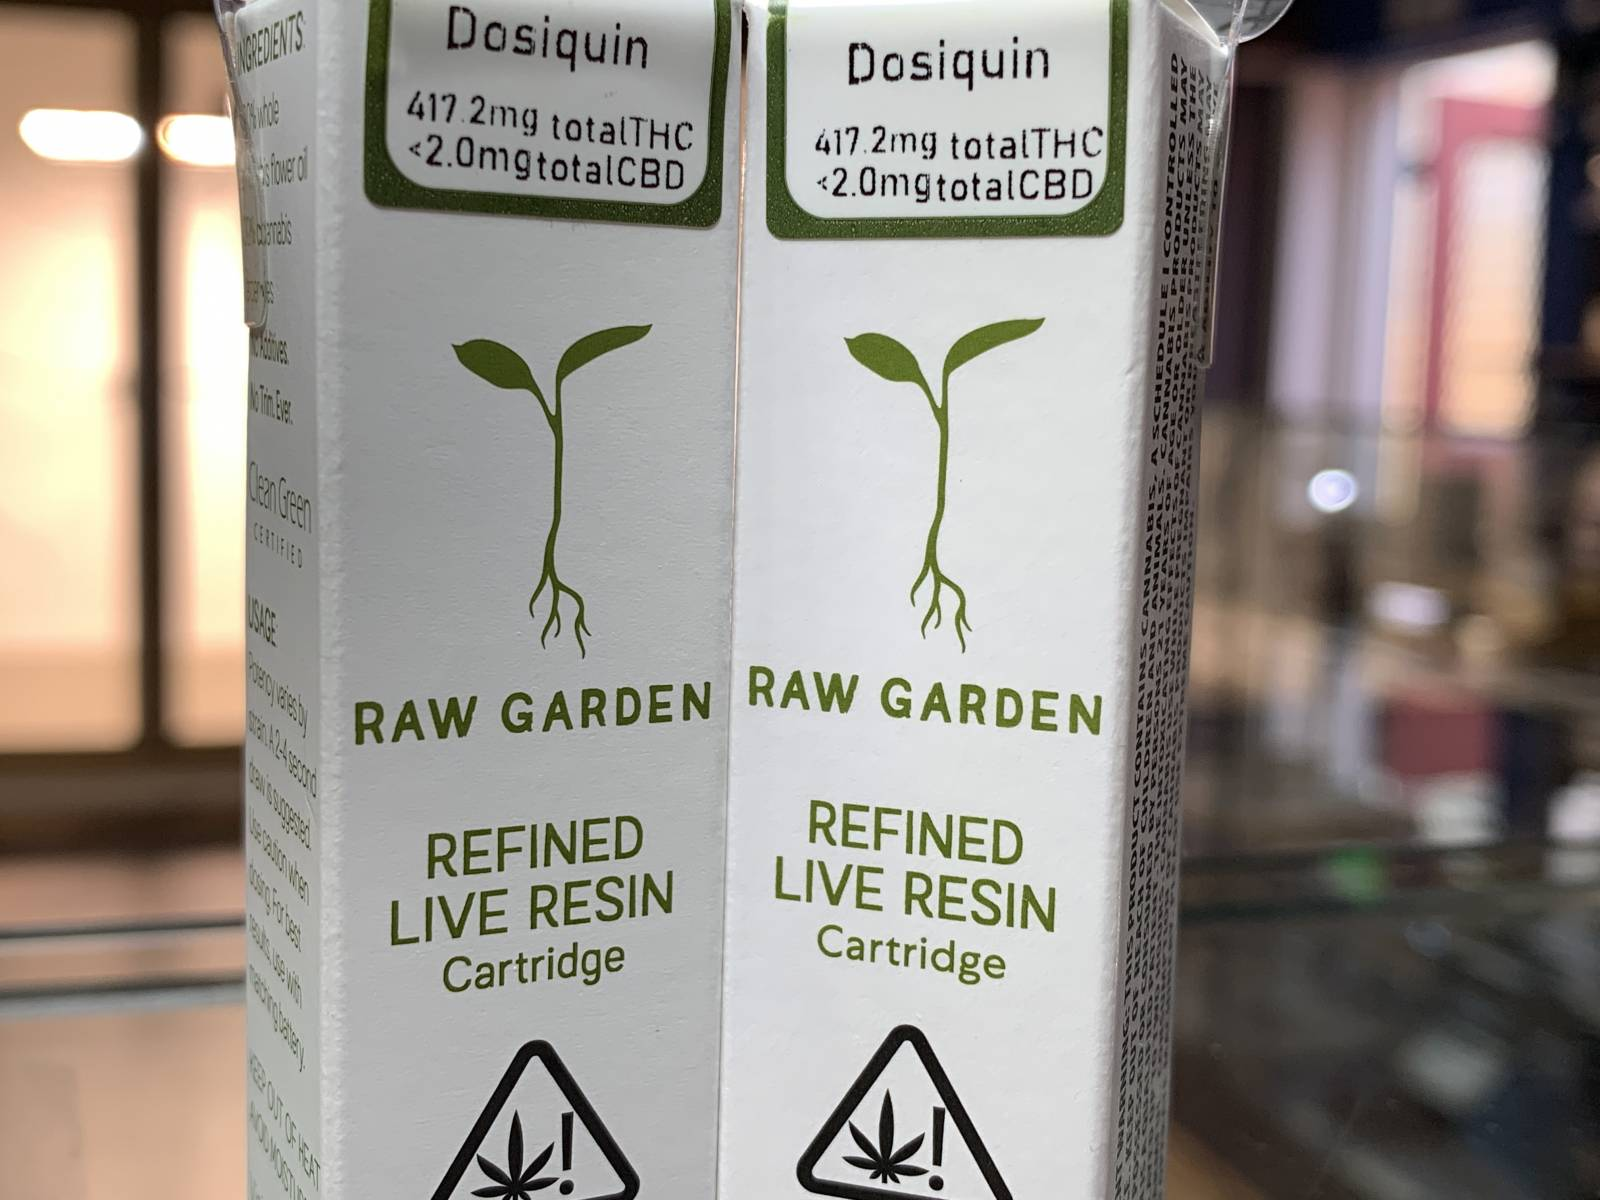 Raw Garden Dosiquin half gram cartridge